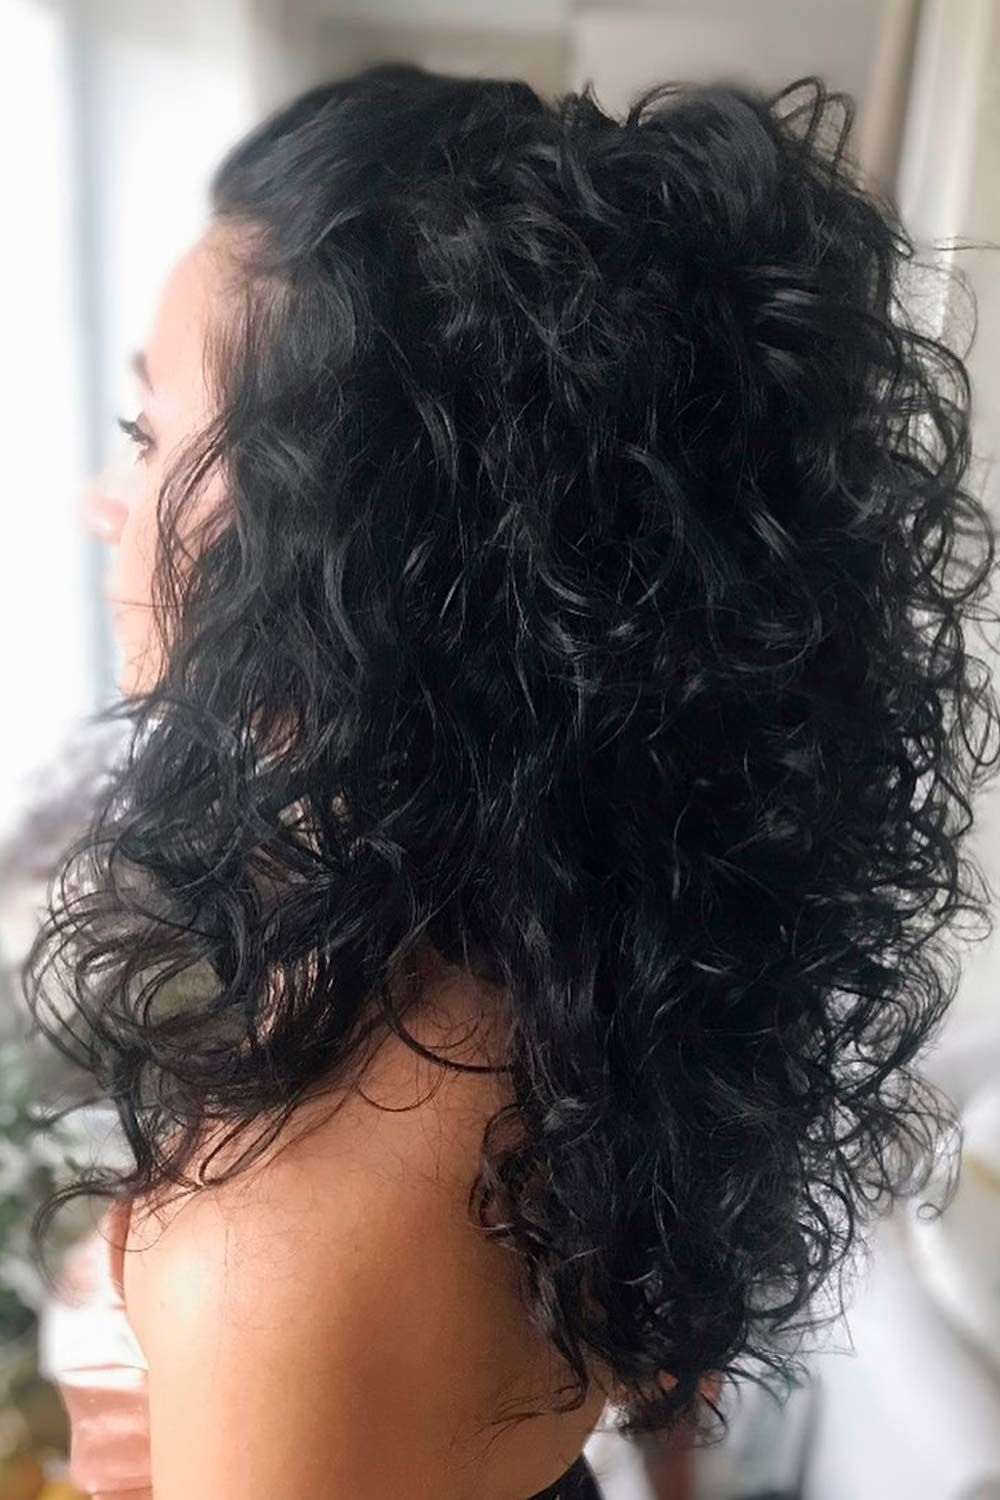 Amazing Styles That You Can Do With Your Long Curly Hair